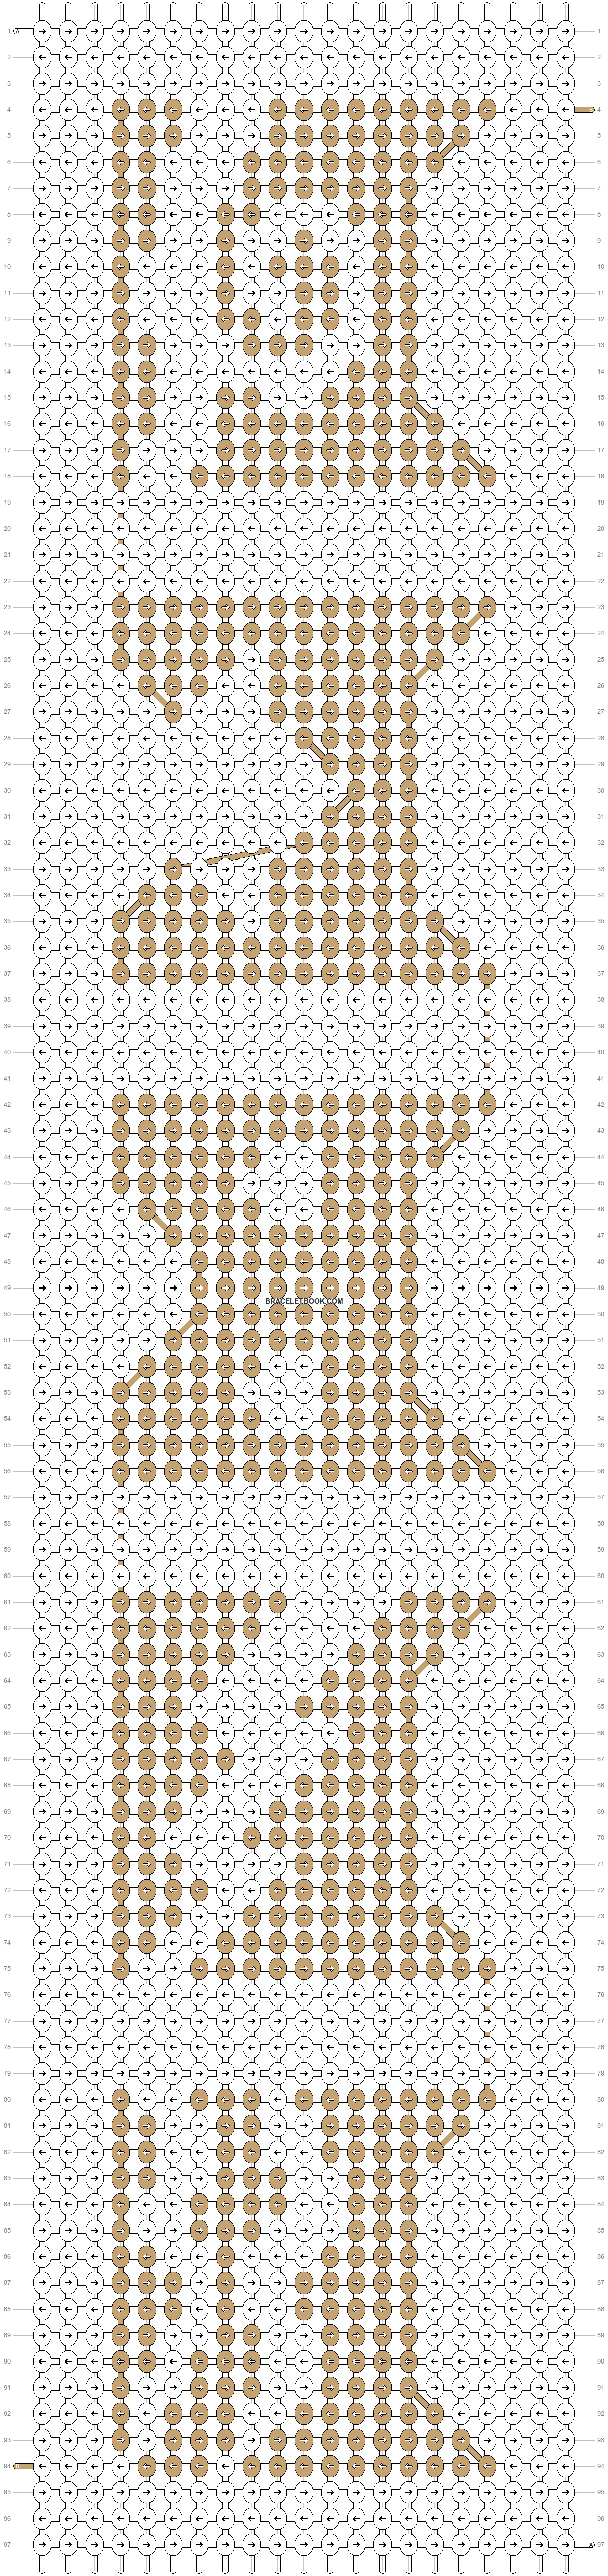 Alpha Pattern #22050 added by Ignis